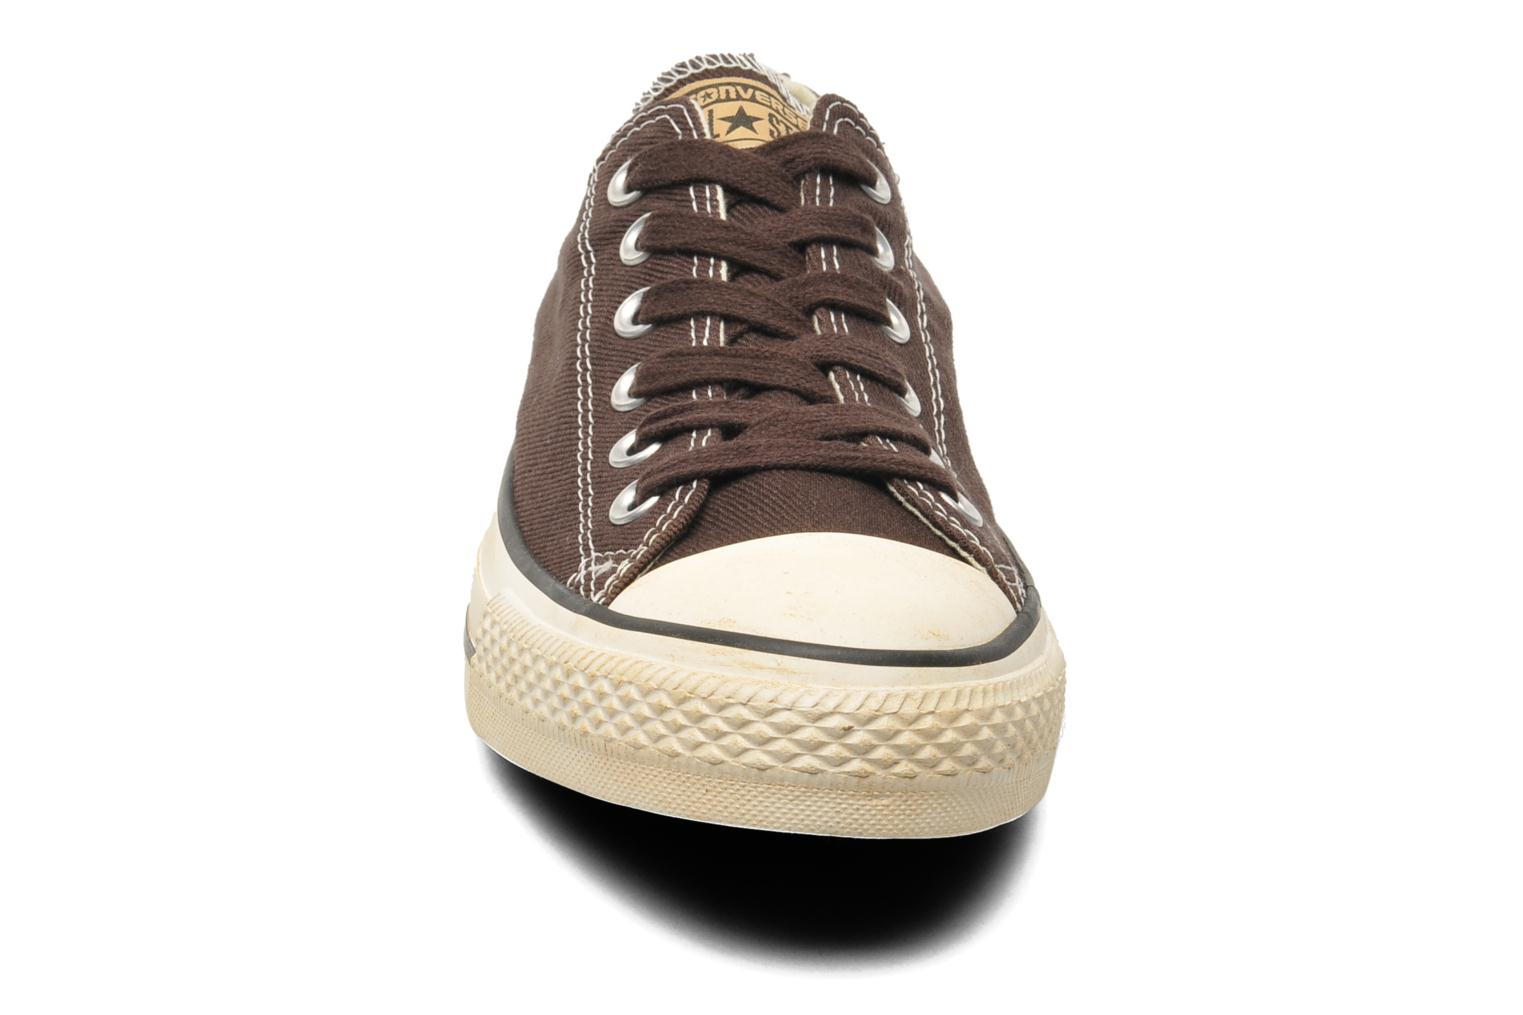 Baskets Converse Chuck Taylor Vintage Washed Twill Ox M Marron vue portées chaussures